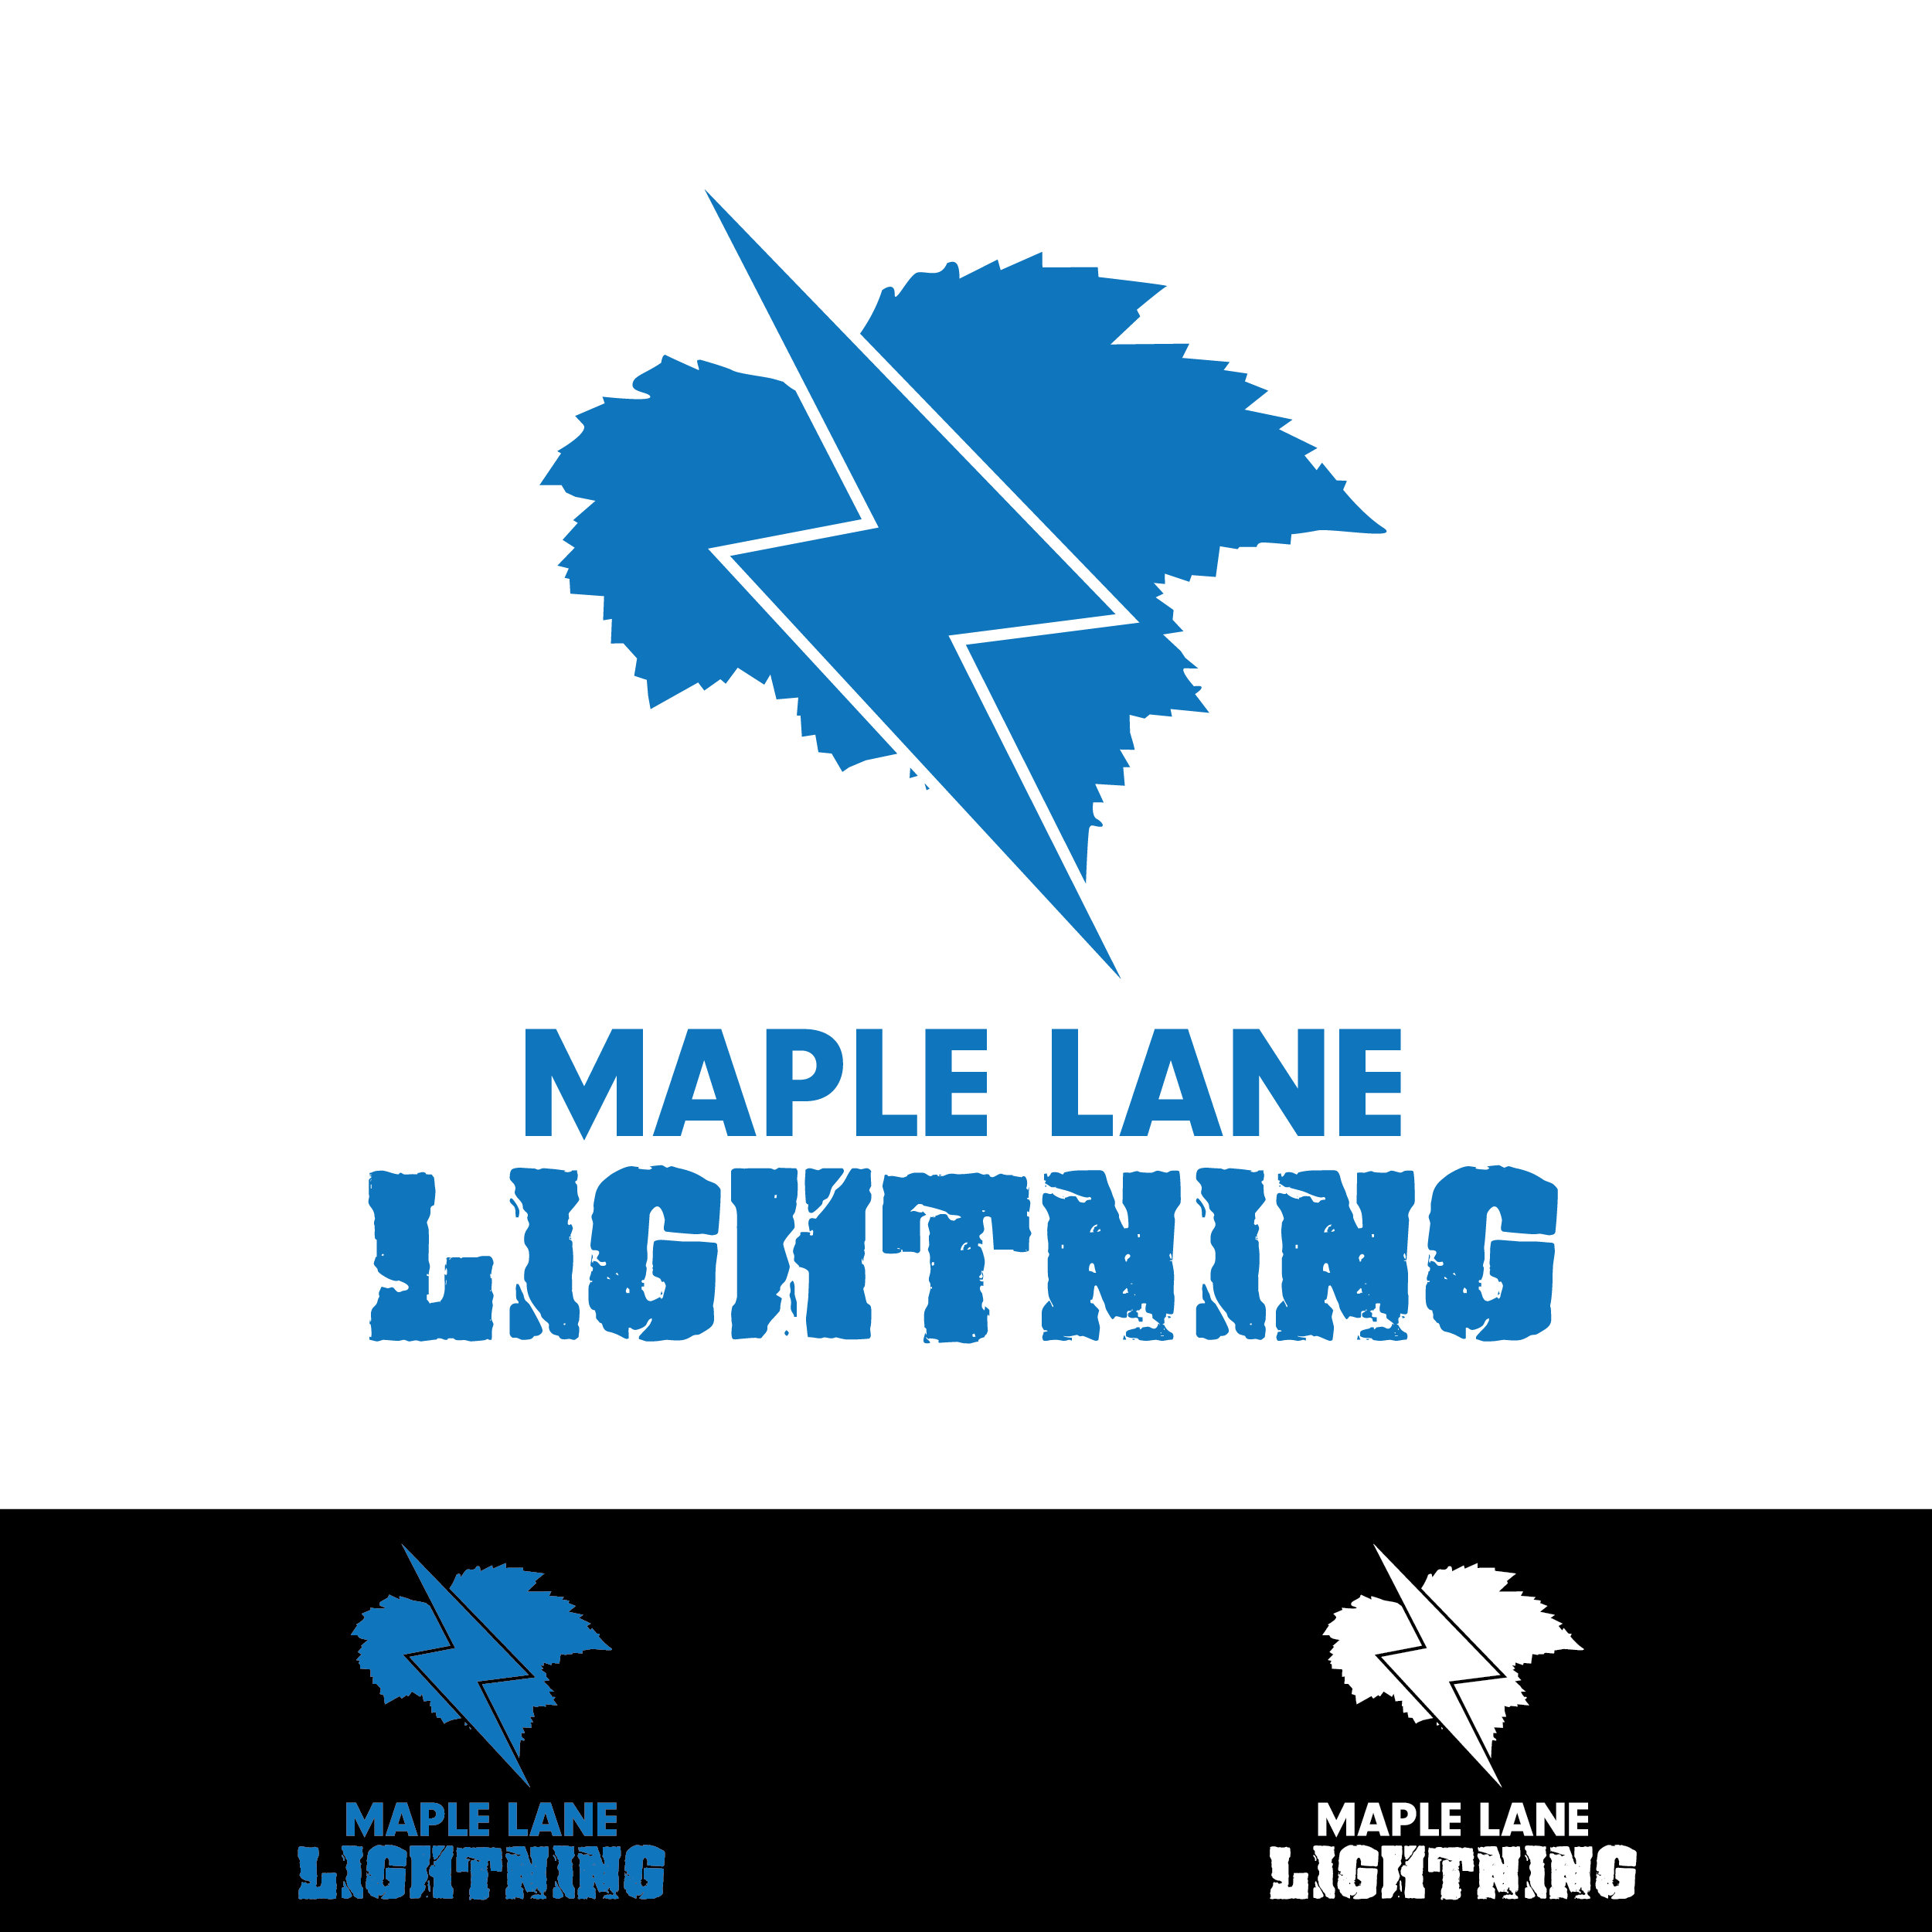 Logo Design by ojsgraphix - Entry No. 90 in the Logo Design Contest Maple Lane Logo Design.